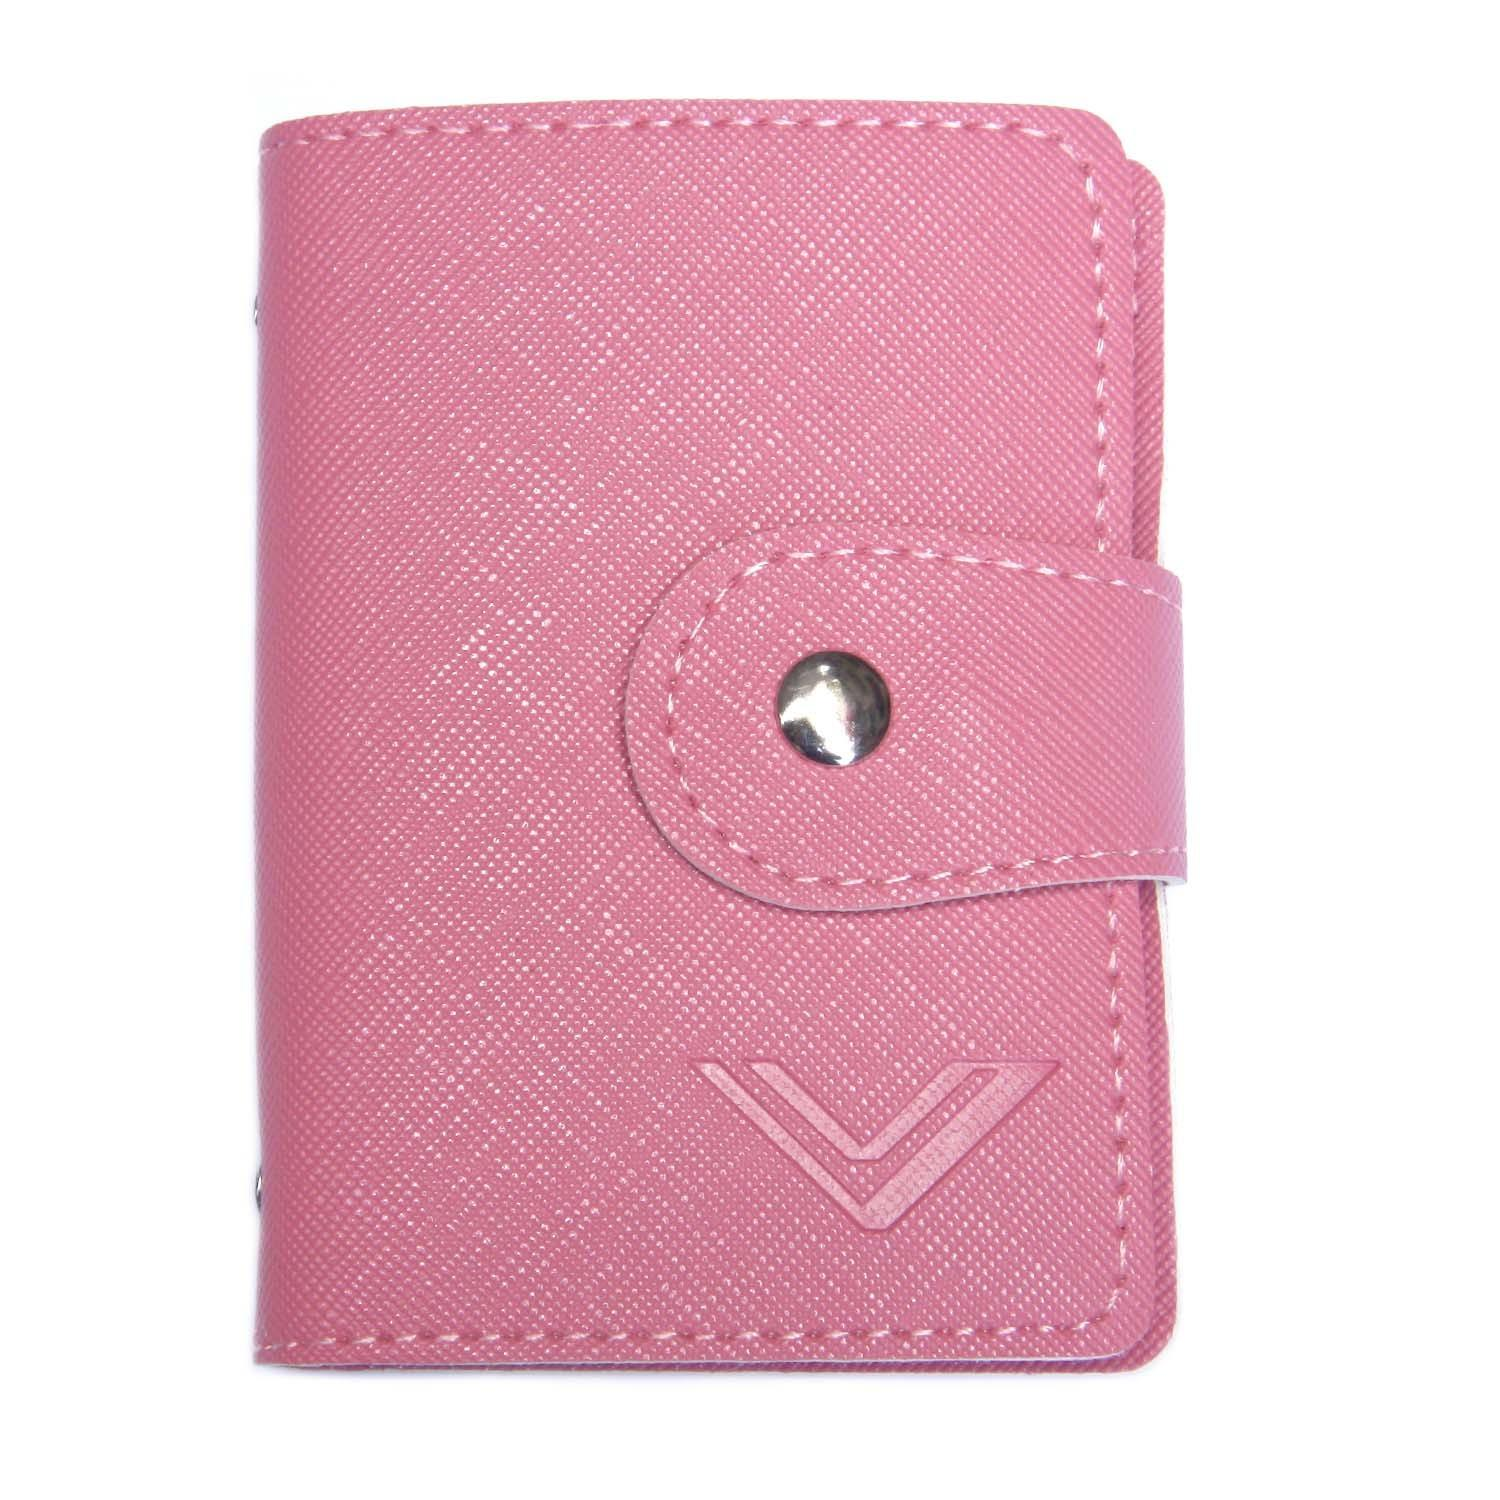 Womens card holders for sale card holder bags online brands womens card holders for sale card holder bags online brands prices reviews in philippines lazada reheart Choice Image